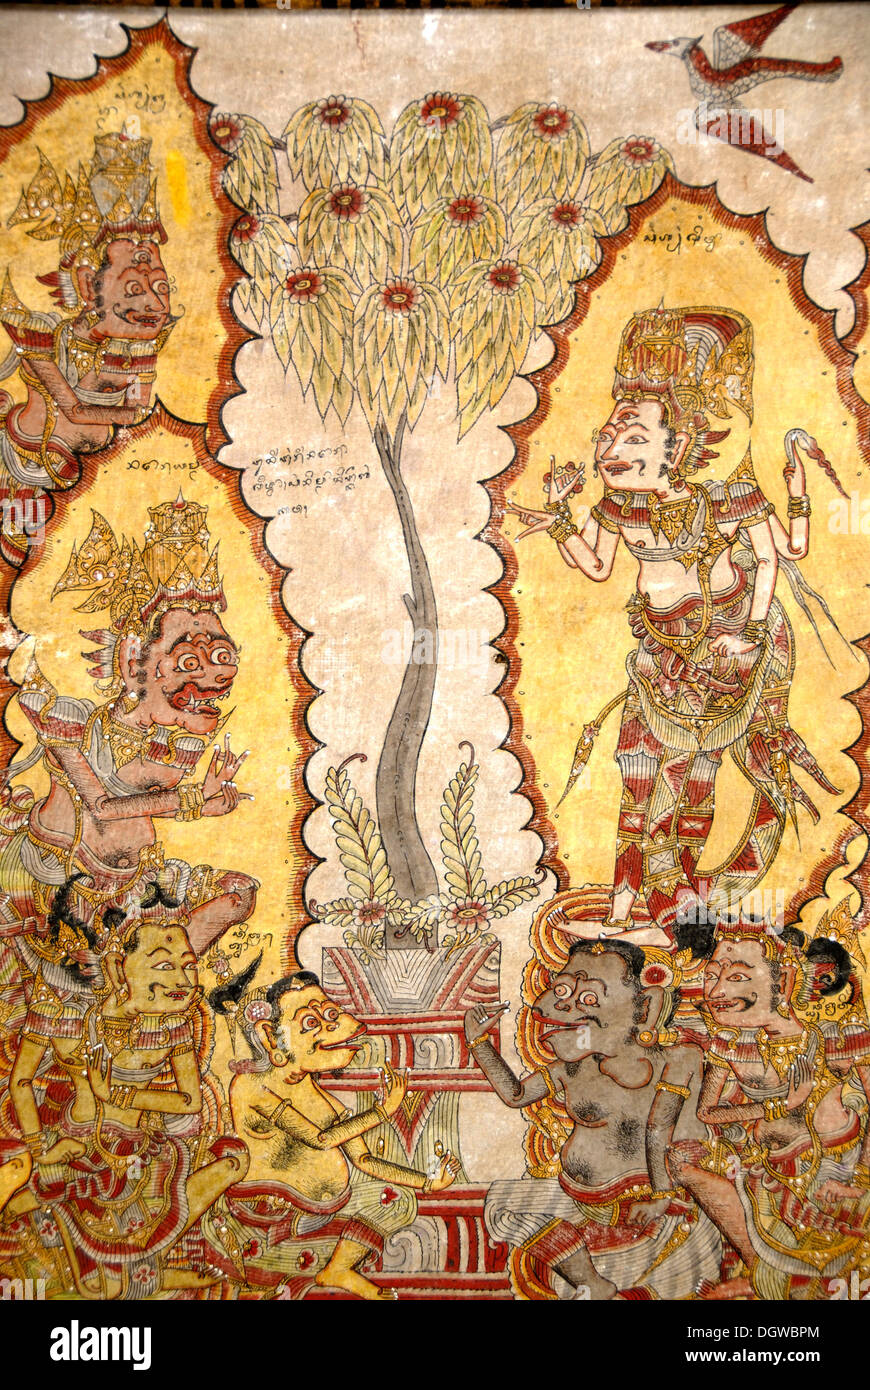 Ceiling paintings in the Royal Palace, gods and demons, Kerta Gosa, Taman Gili palace, Klungkung, Semarapura, Bali, Indonesia - Stock Image